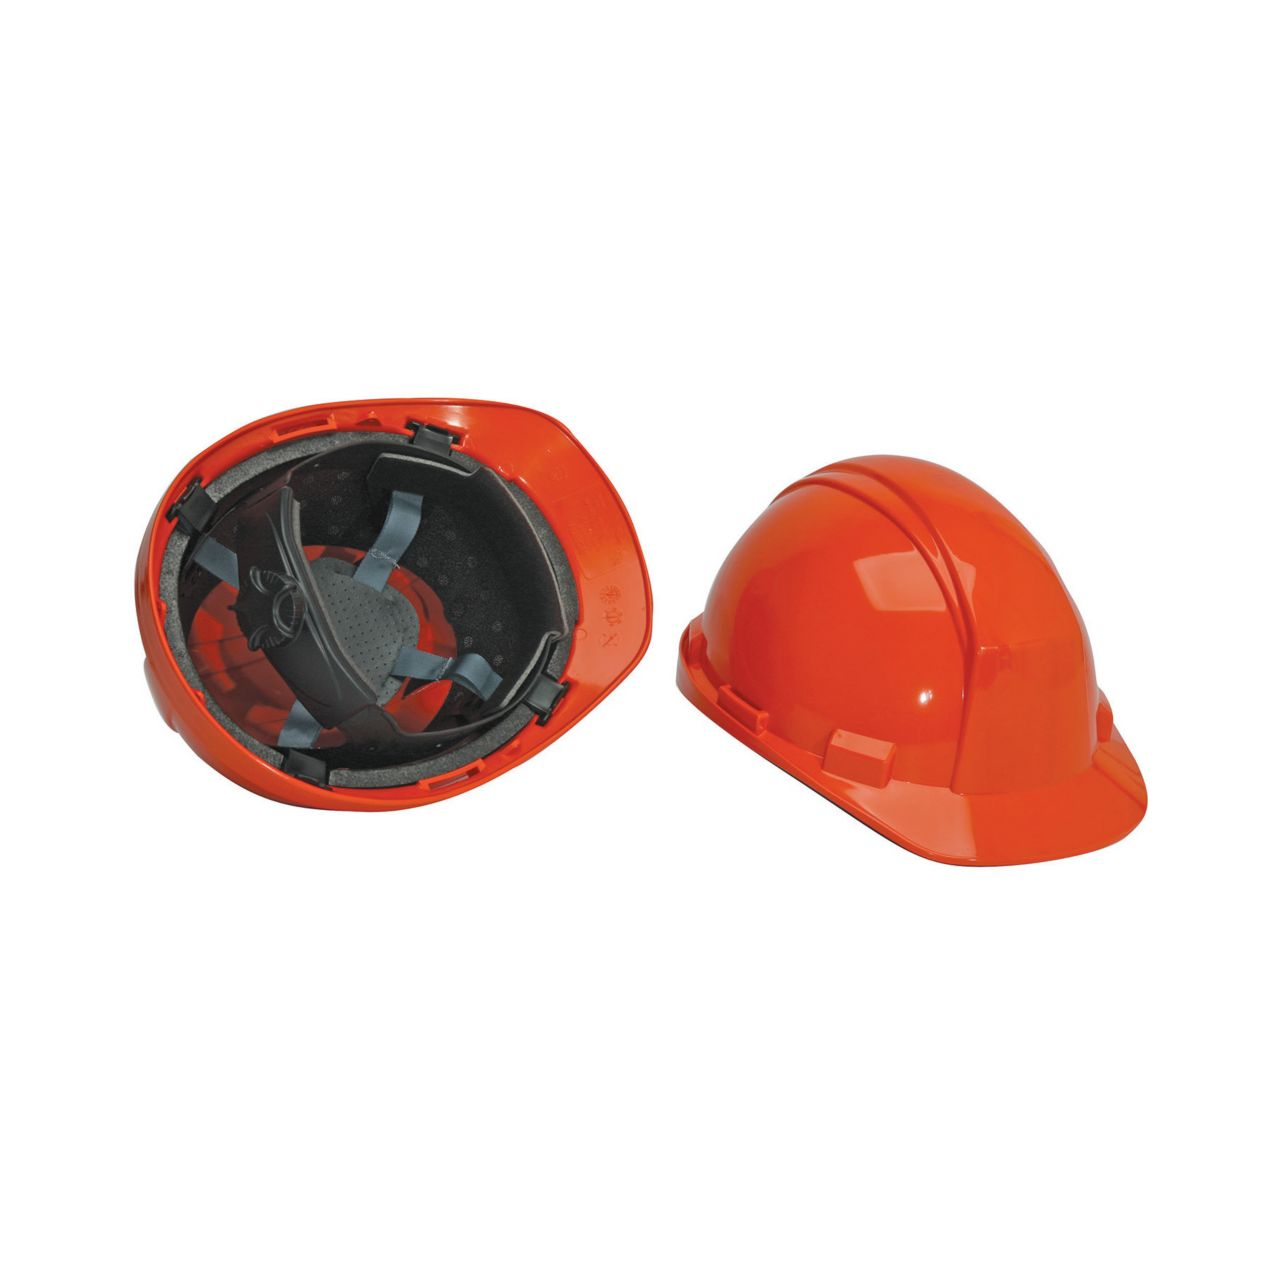 A89R030000_Hat_Ratch_Orange_North_Hard_Hat